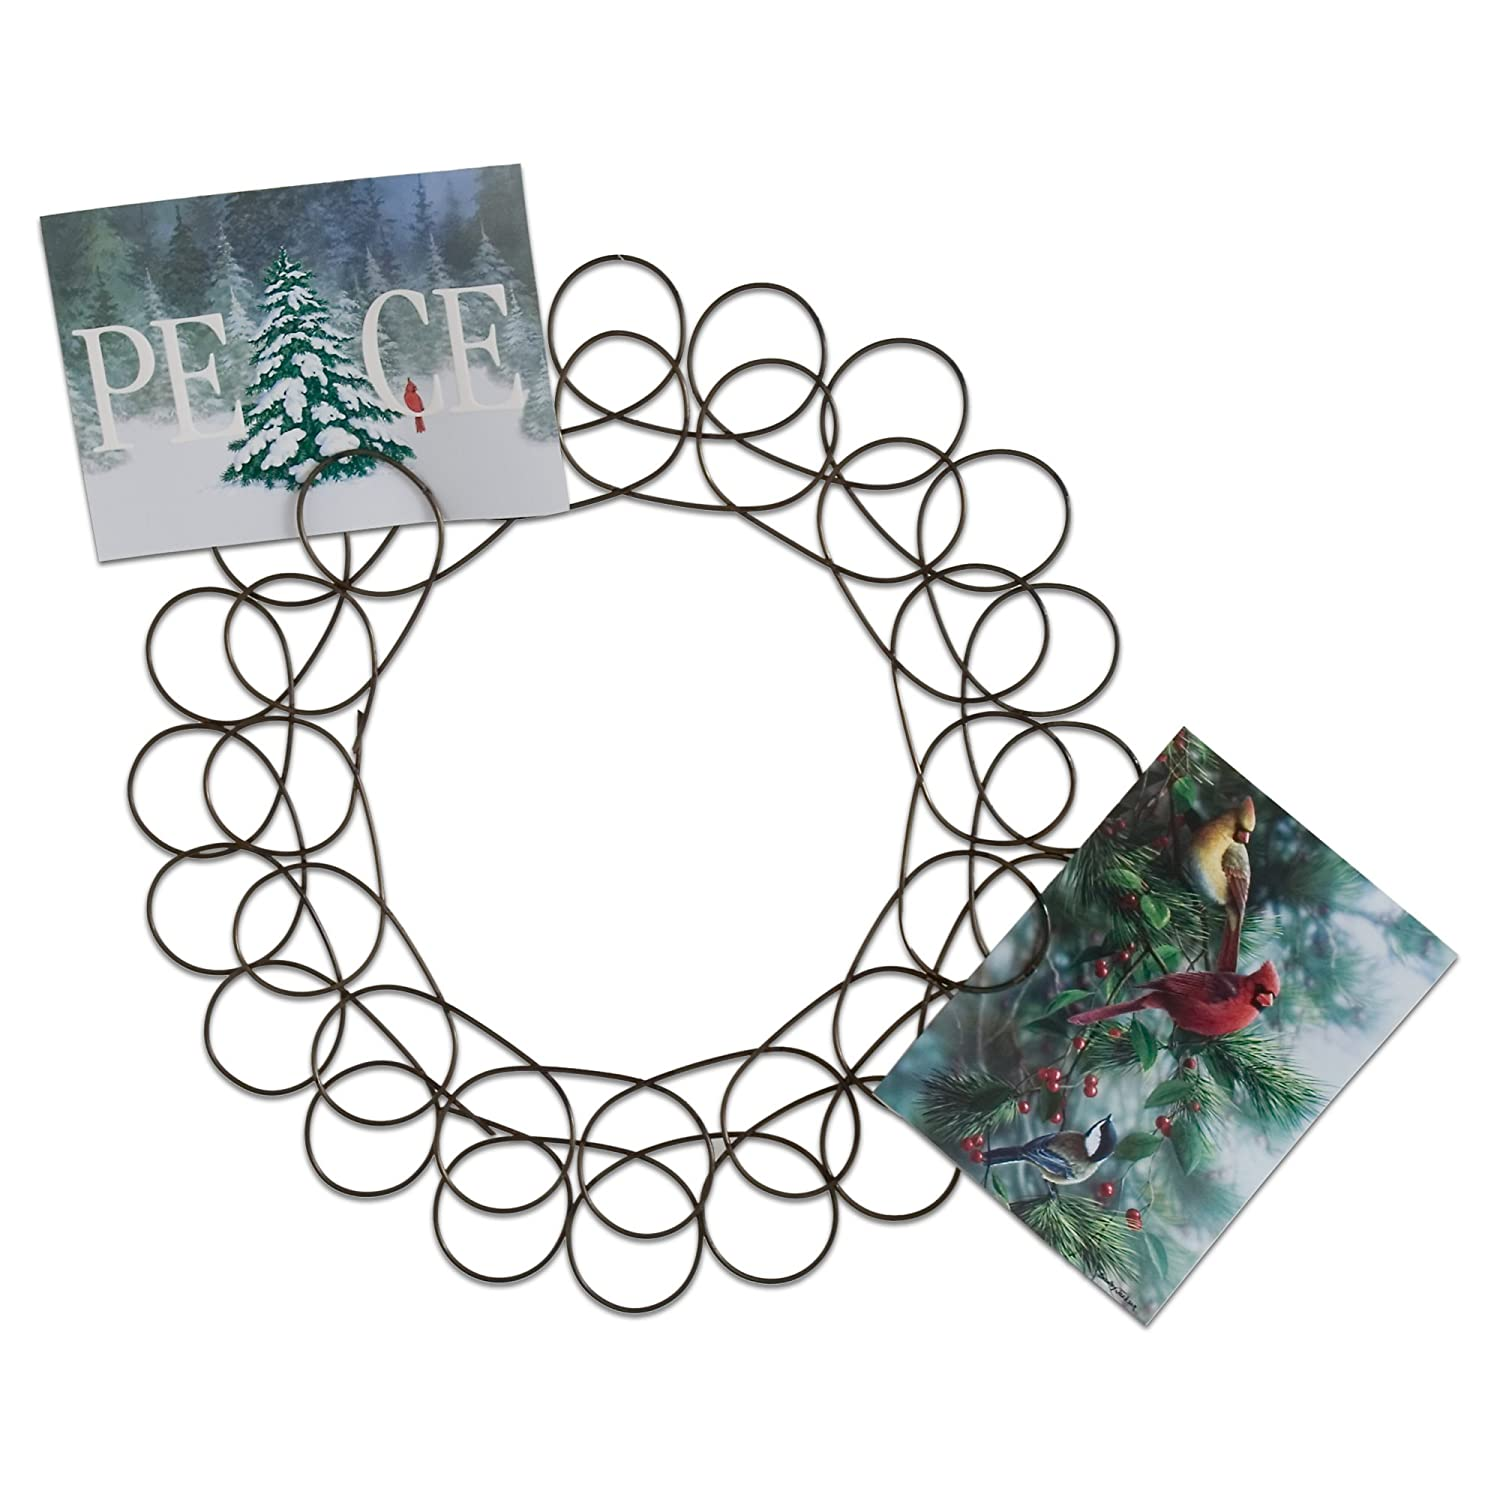 Amazon.com: Tag Holiday Metal Spiral Wreath Greeting Card Holder ...